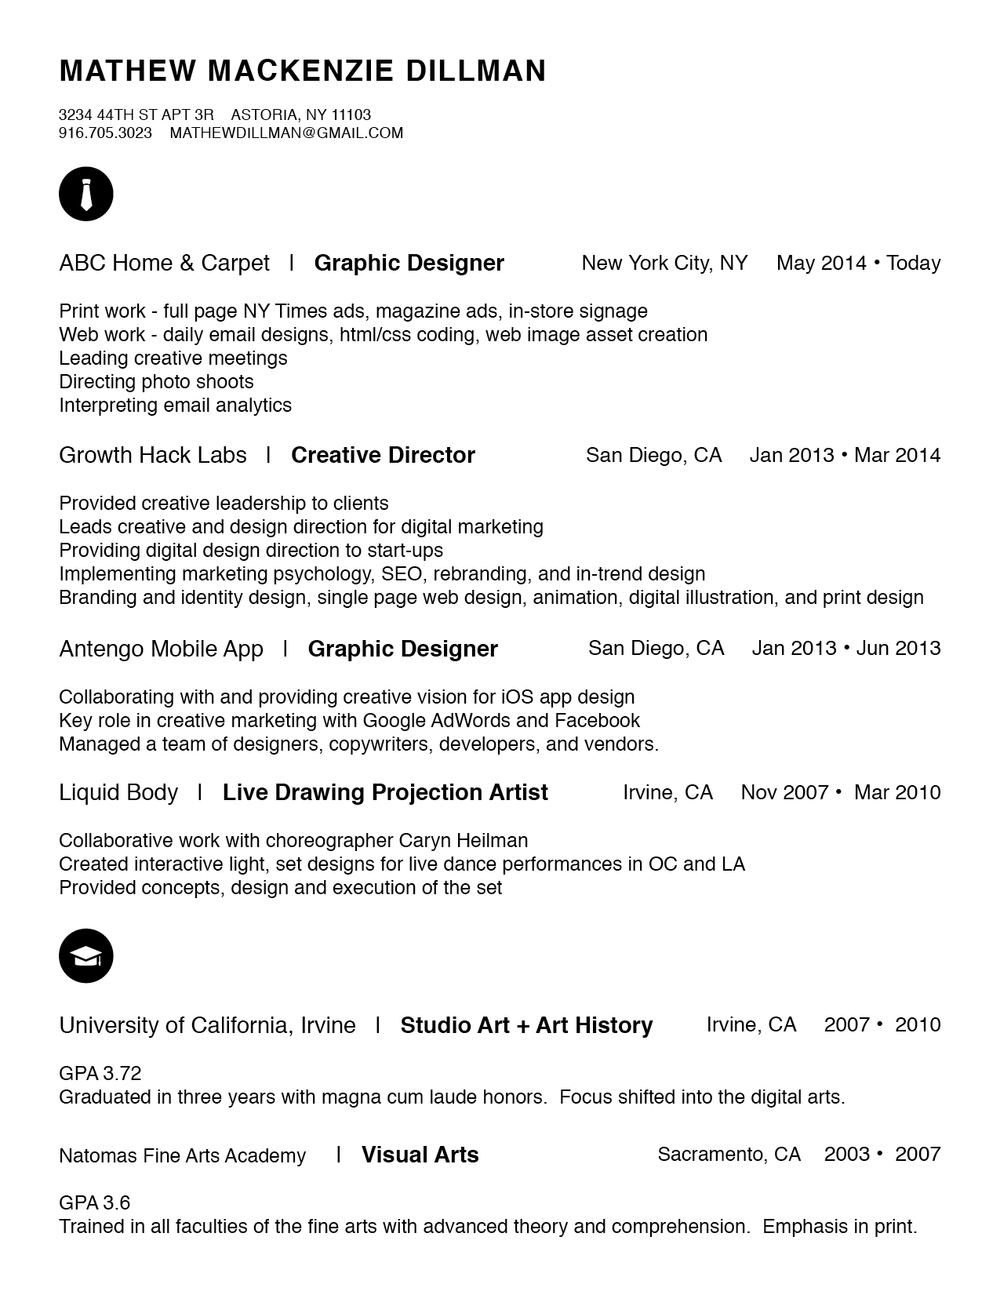 mathew-dillman-resume-2015